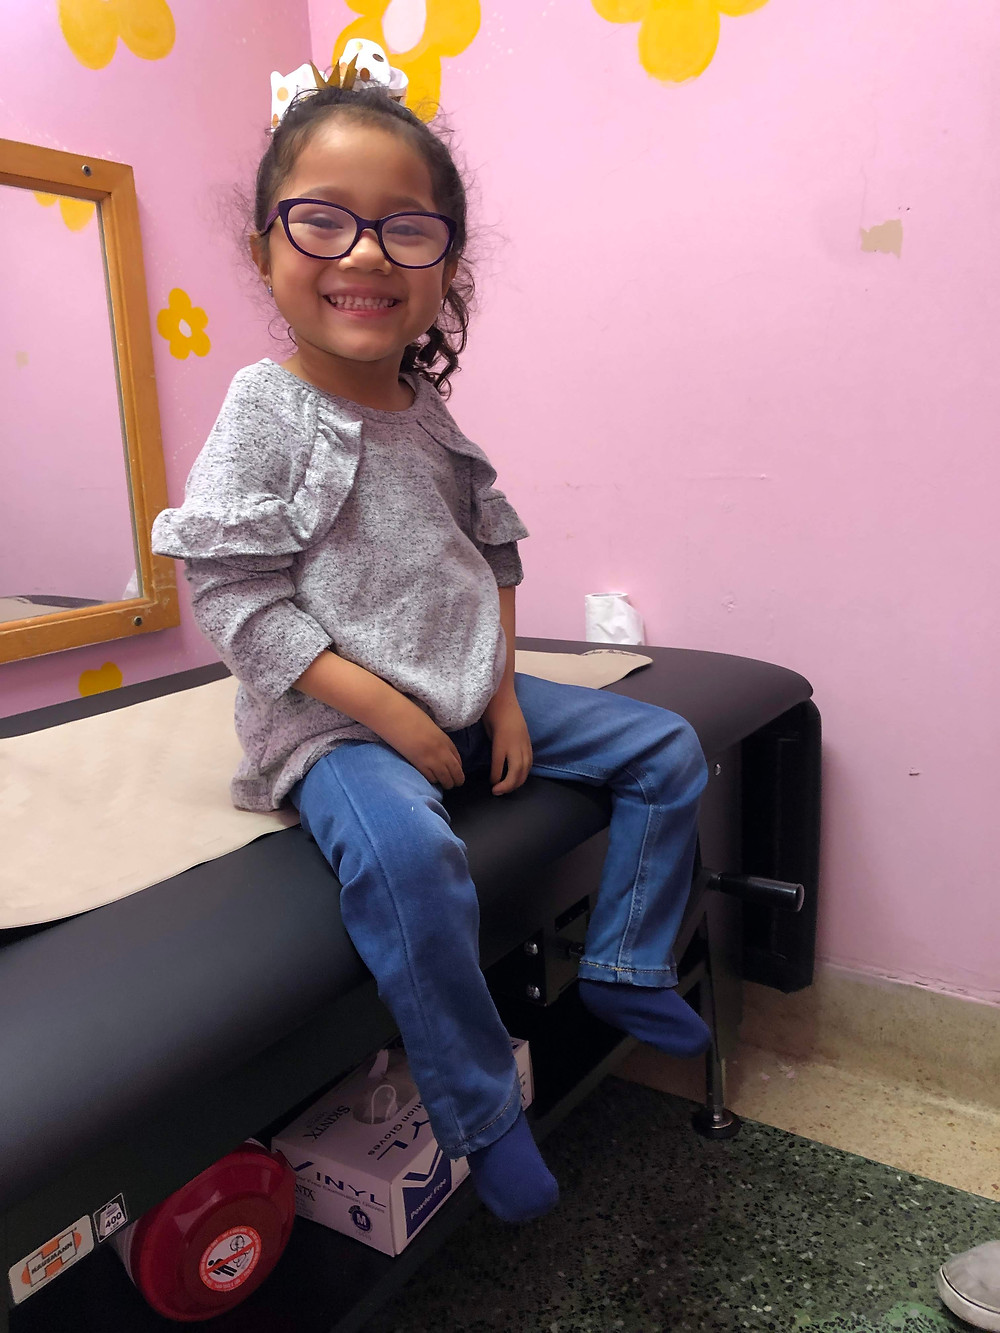 A little girl wearing glasses smiles for a picture as she sits on a long black cushioned table partly covered with brown paper. The room is painted light pink with bright yellow and white flowers. Behind the long table is a square brown mirror.